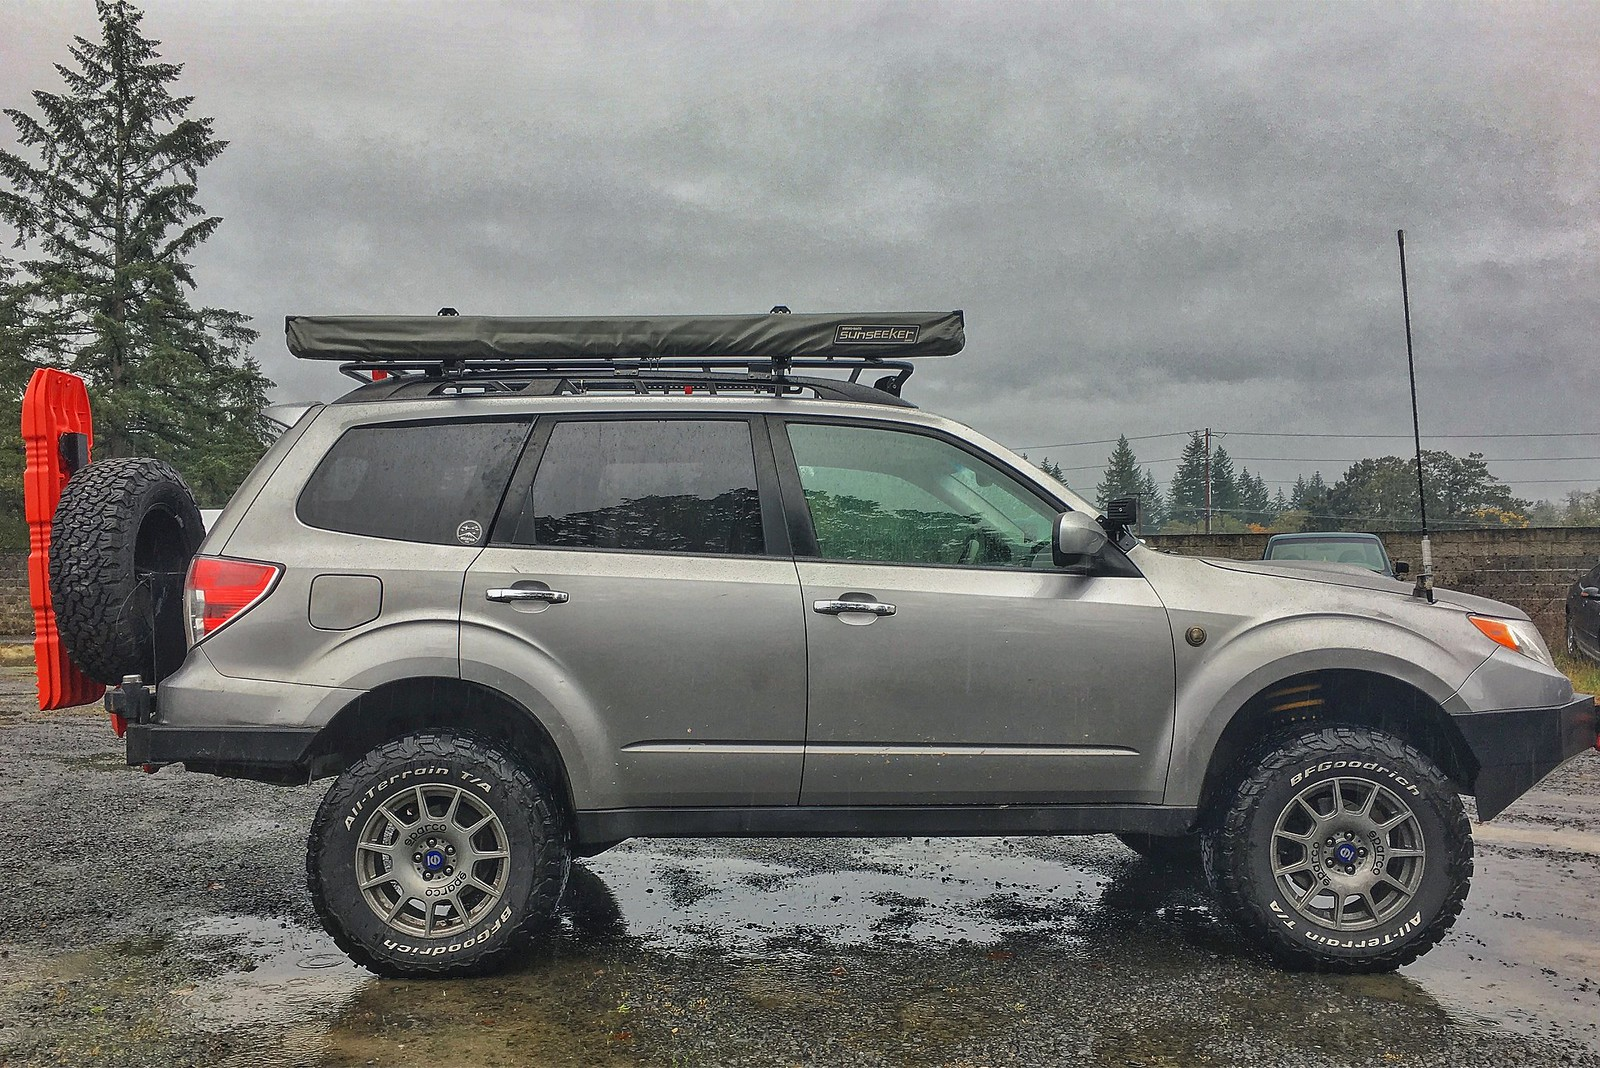 09 13 Overland Build Thread Subaru Forester Owners Forum